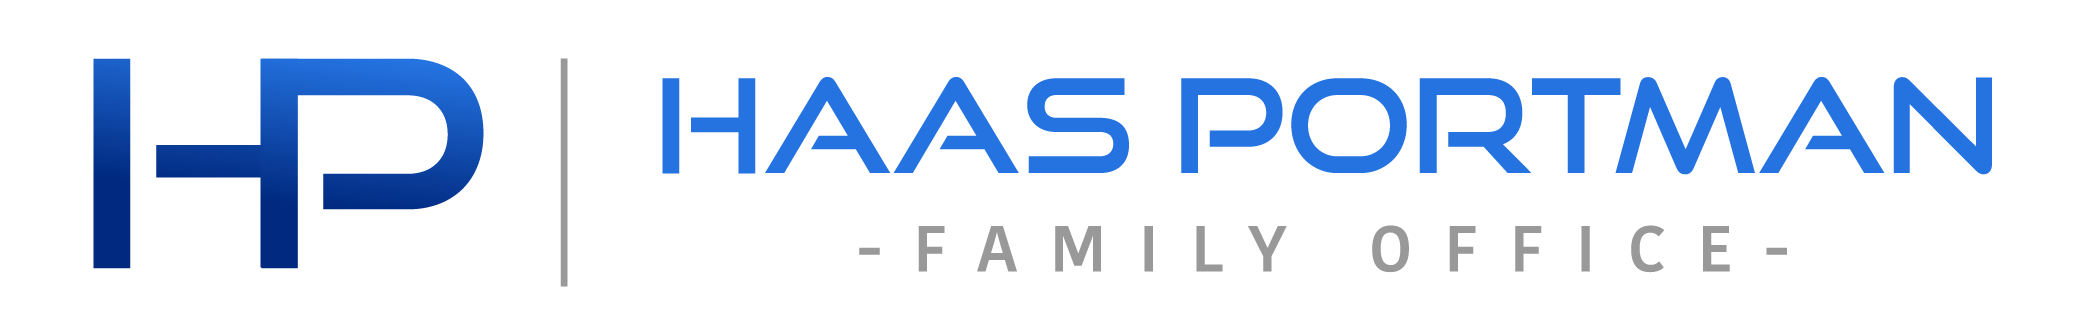 Haas Portmanfamily office logo